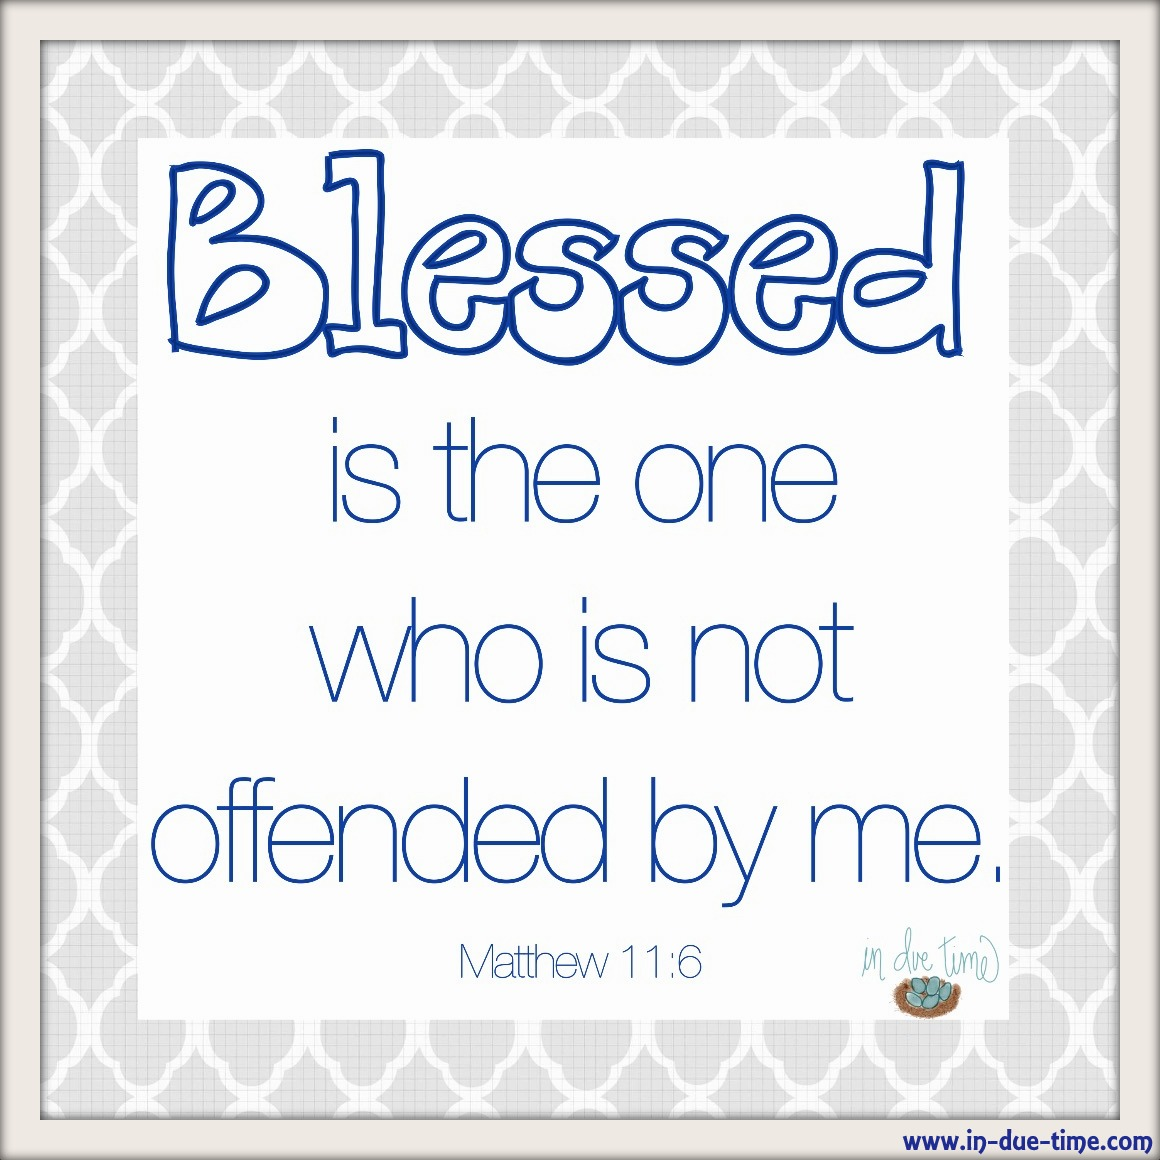 Blessed is the man who doesn't become offended. Matthew 11